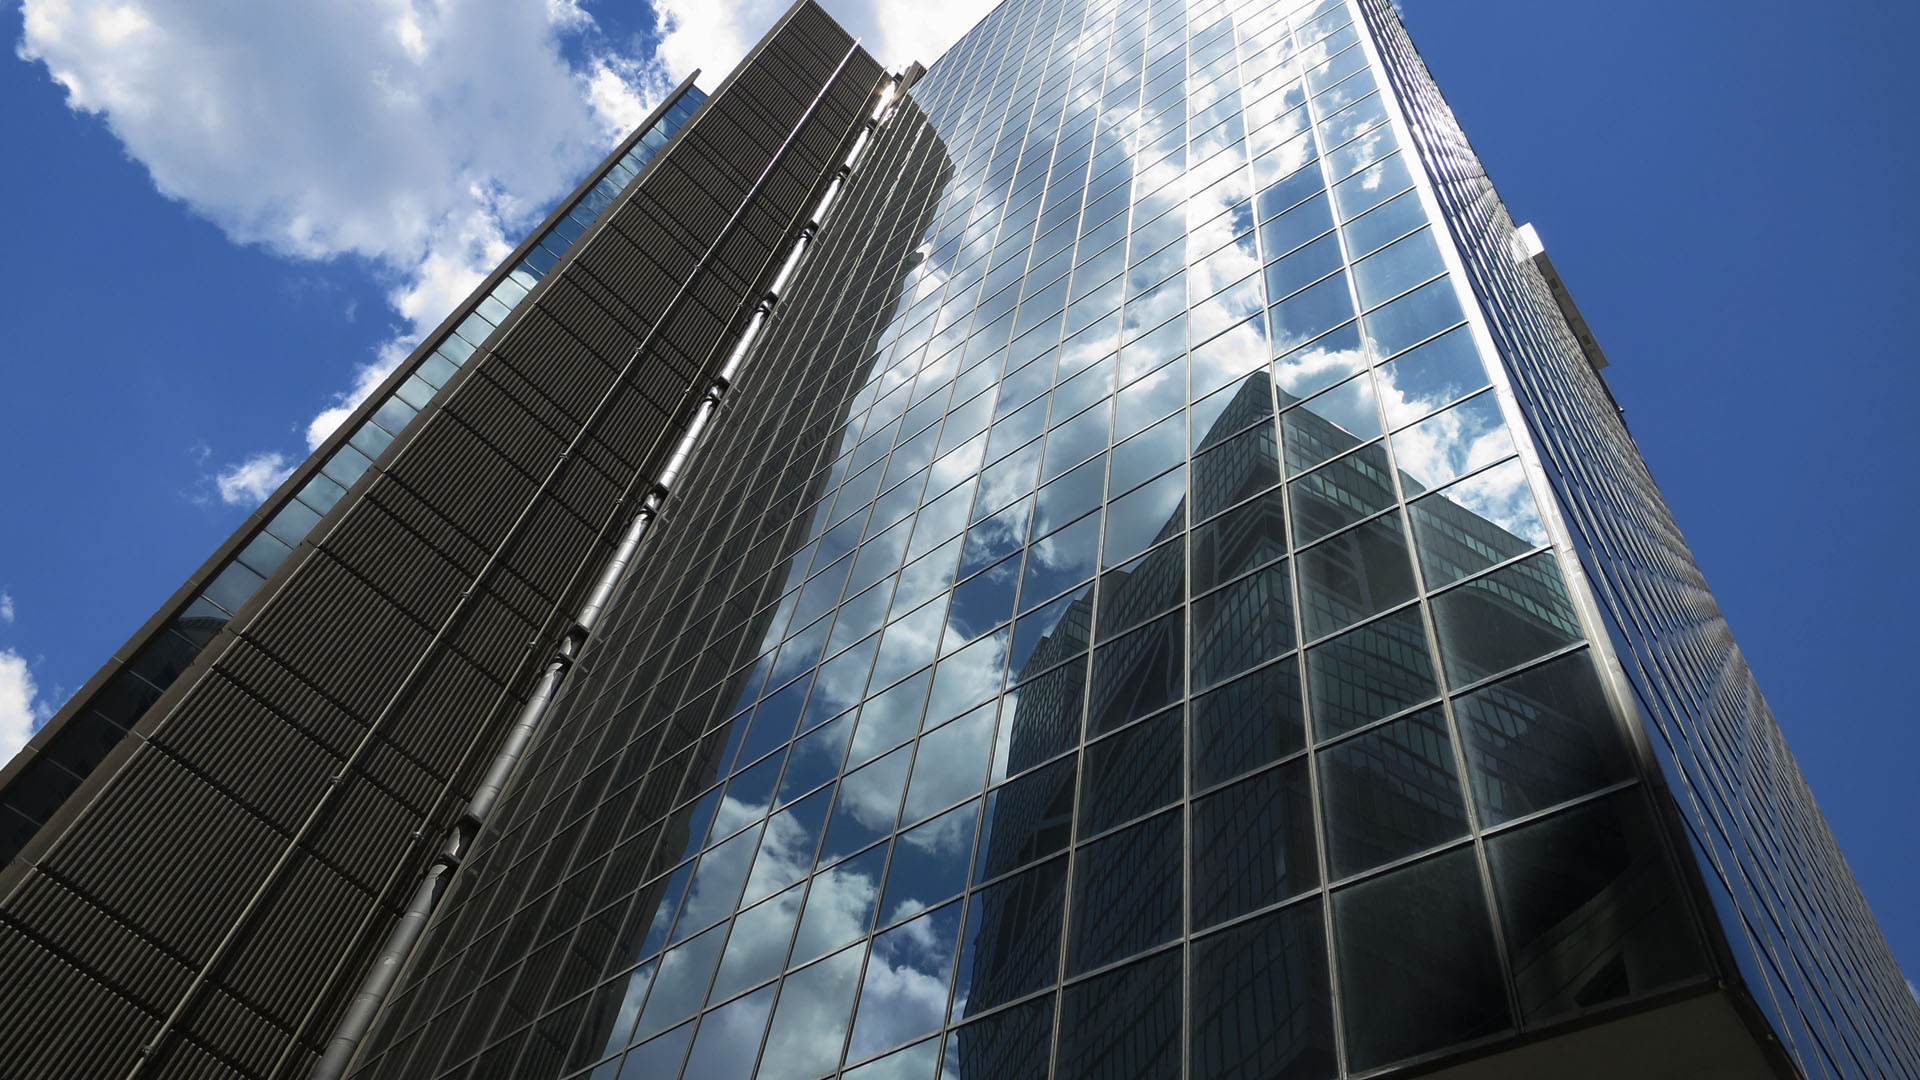 Skyscraper-Architecture-Design-Wallpaper